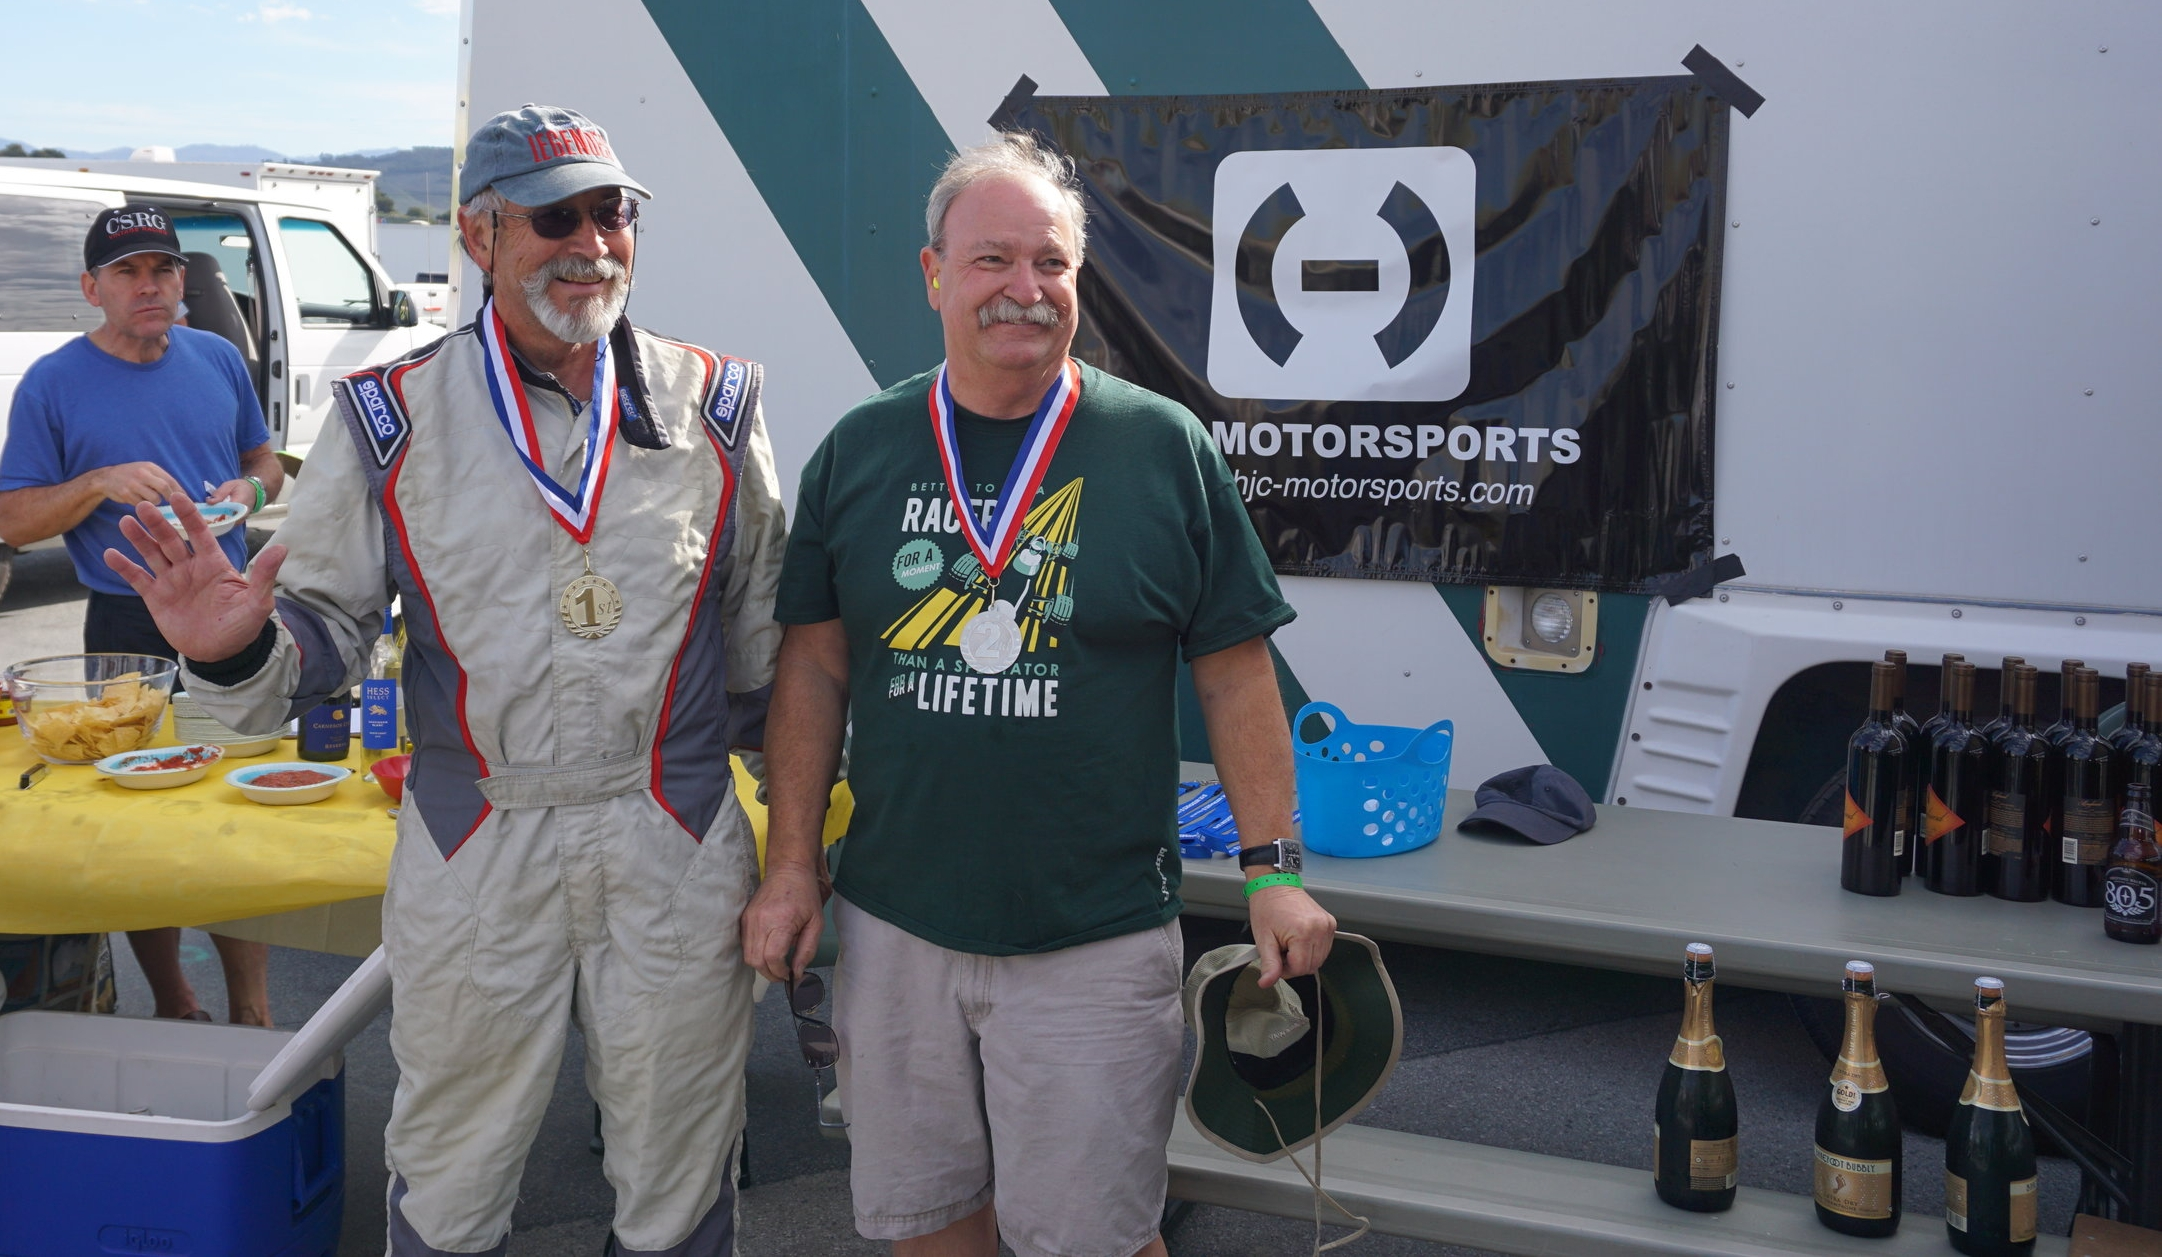 Norm and Dan, the Club Ford Podium!